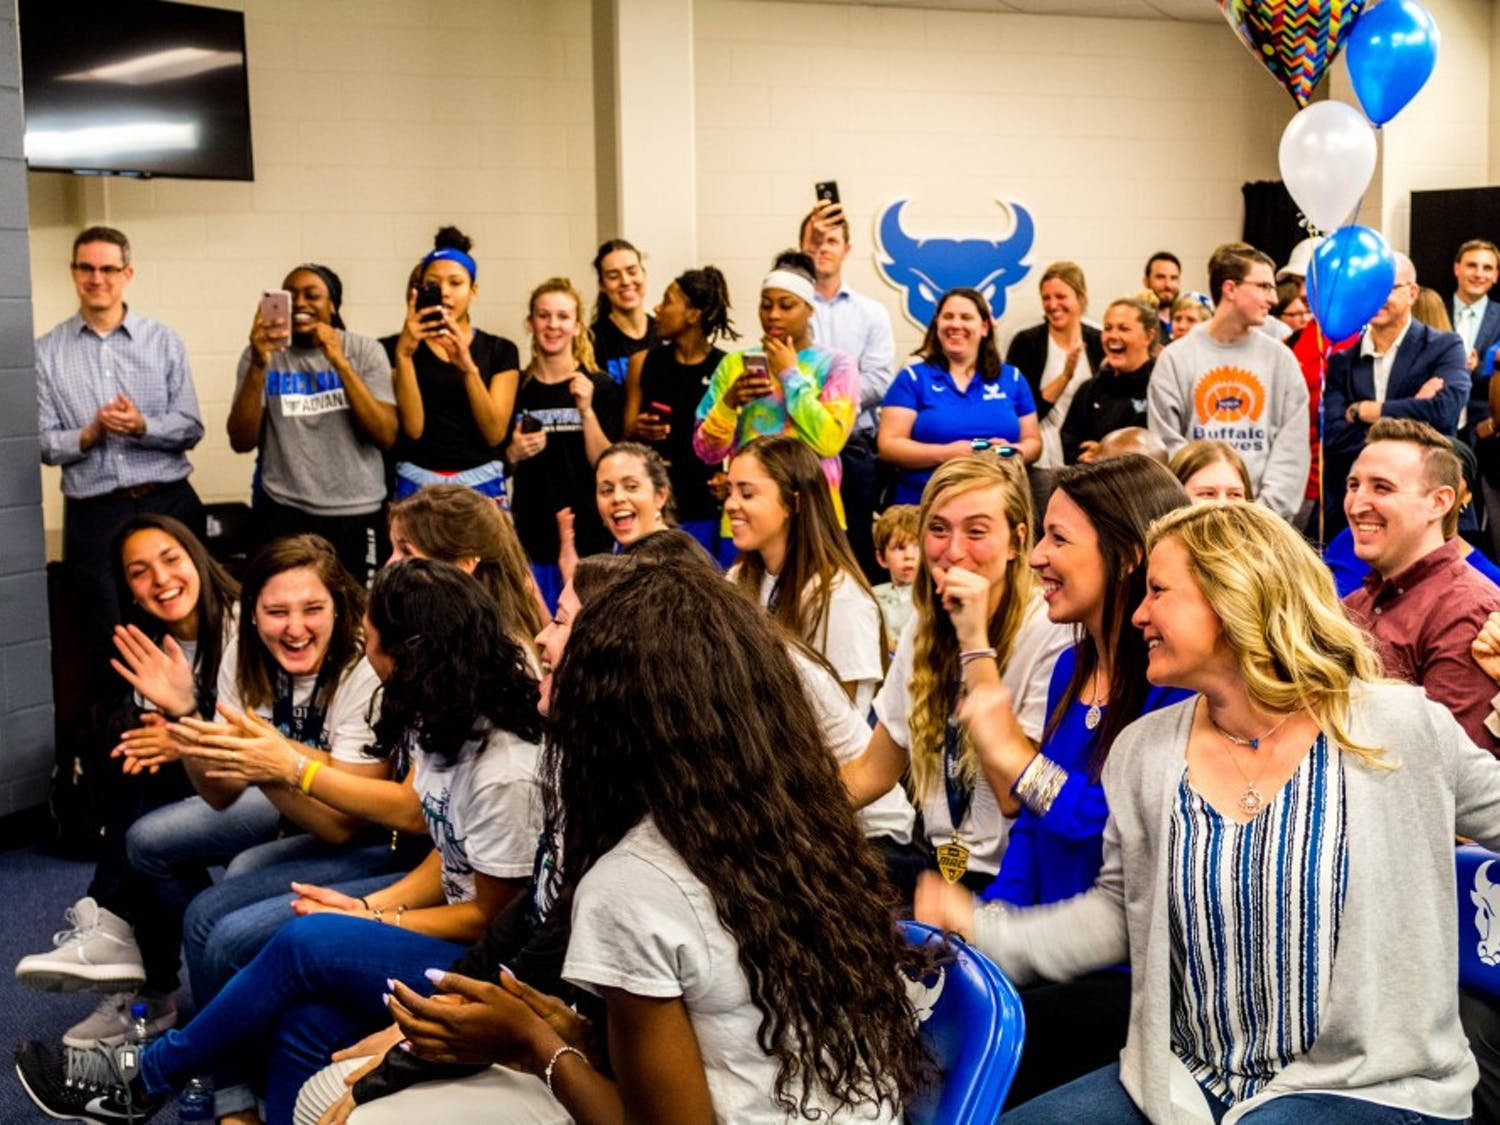 The women's tennis team reacting to the announcement of its first round NCAA Tournament opponent, the Northwestern Wildcats. The Bulls will travel to Evanston, Illinois for the first round matchup on May 11.